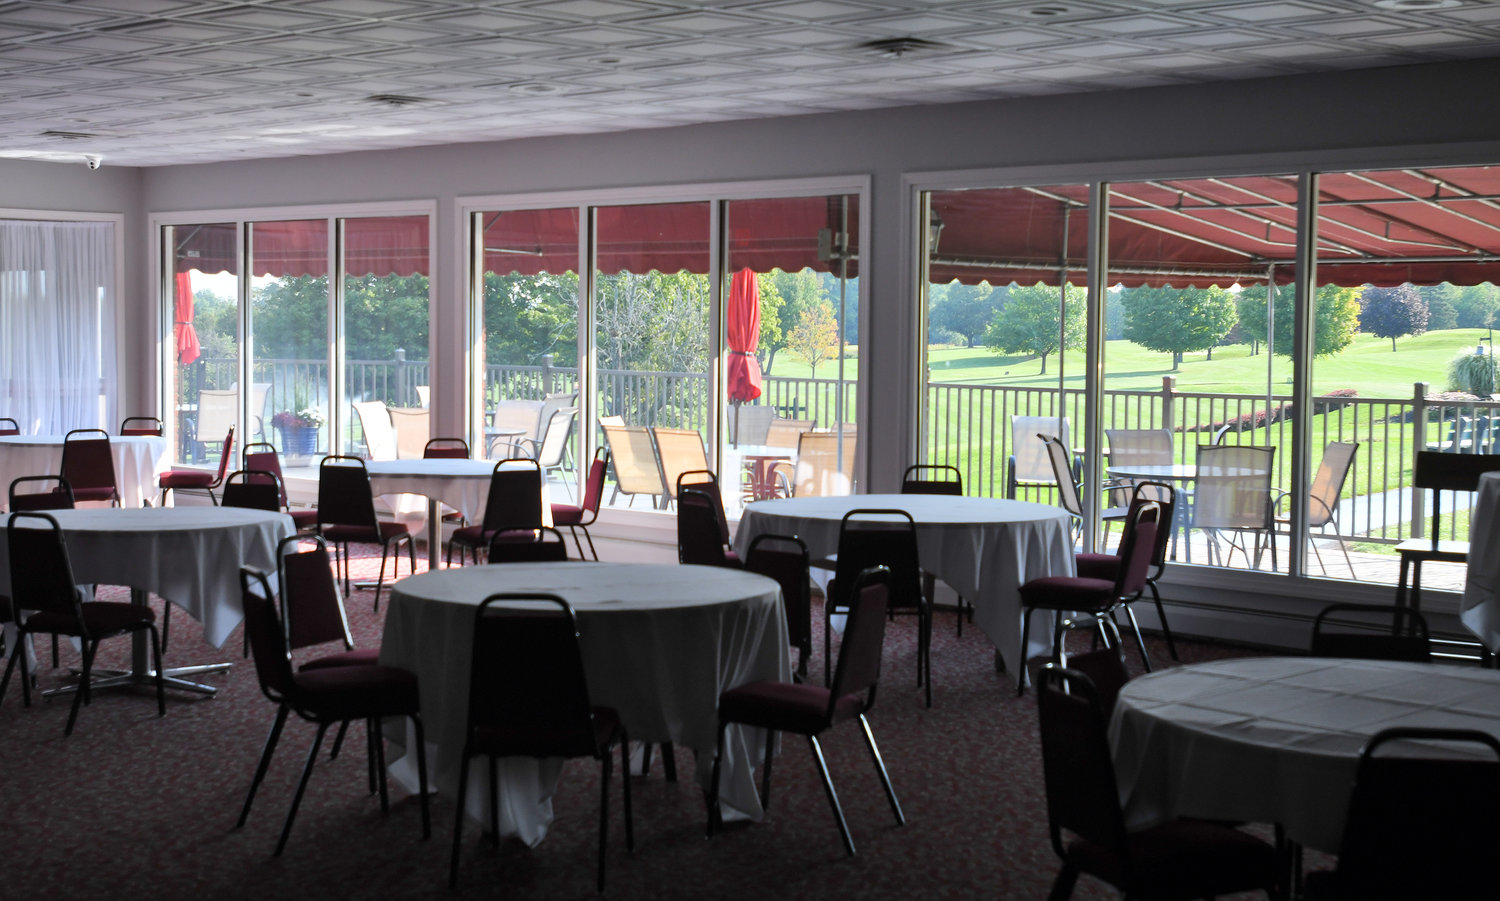 TABLE FOR YOU — Tables sit in the banquet room at The Skenandoa Club. The banquet room is used for wedding receptions and other parties at the club. Some members like to eat their dinner there after playing a round of golf.